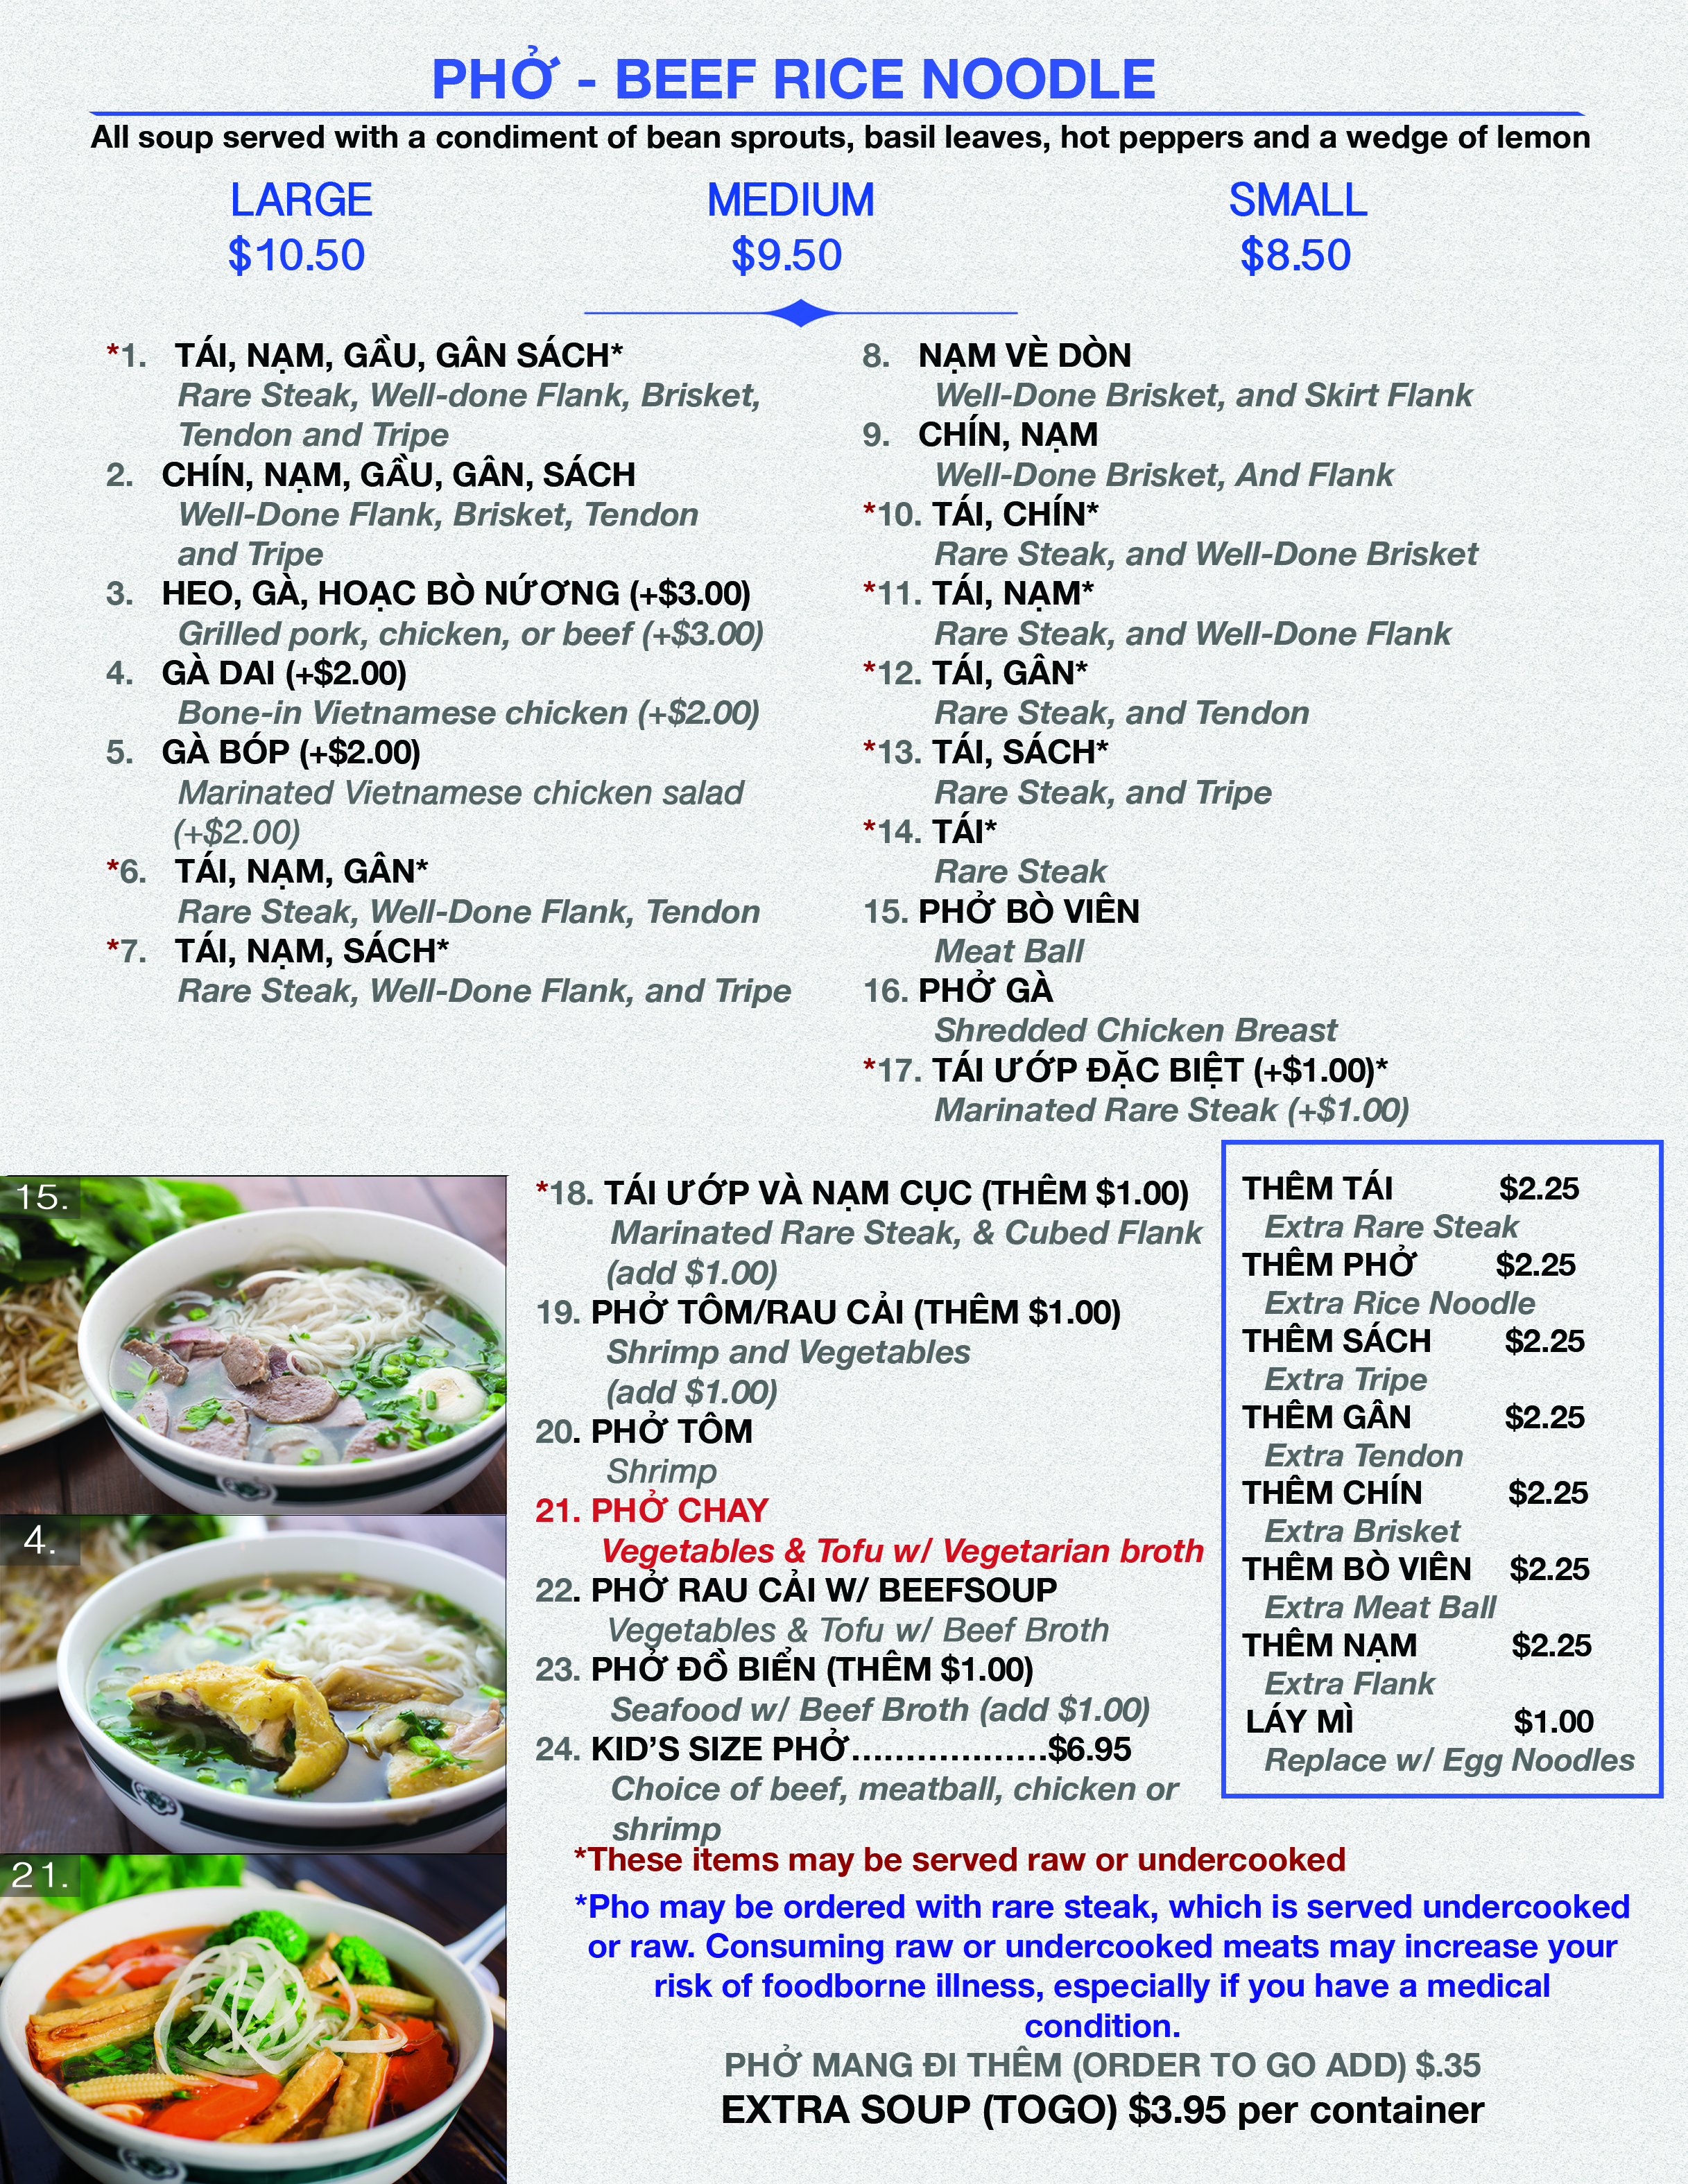 Pho Duy Restaurant Menu Page 2 6/4/17